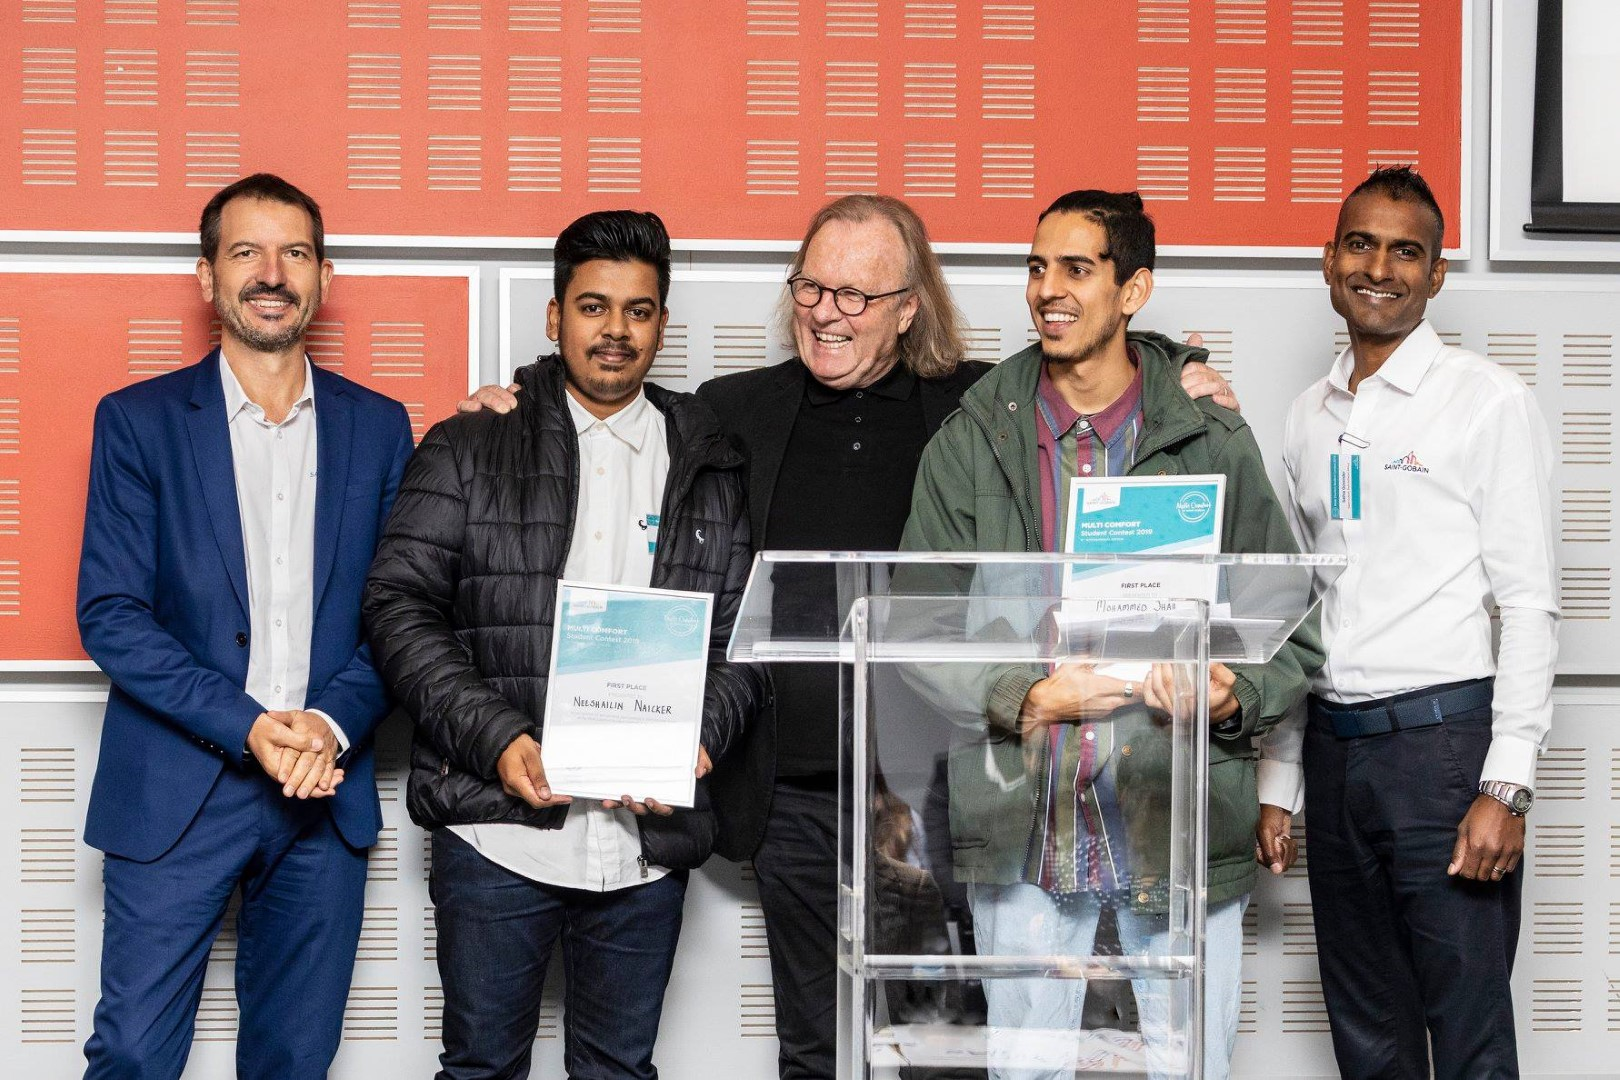 Architecture students Mr Neeshailin Naicker (second left) and Mr Mohammed Shah (second right) walked away with first prize at the South African Saint-Gobain Multi Comfort Student Contest.